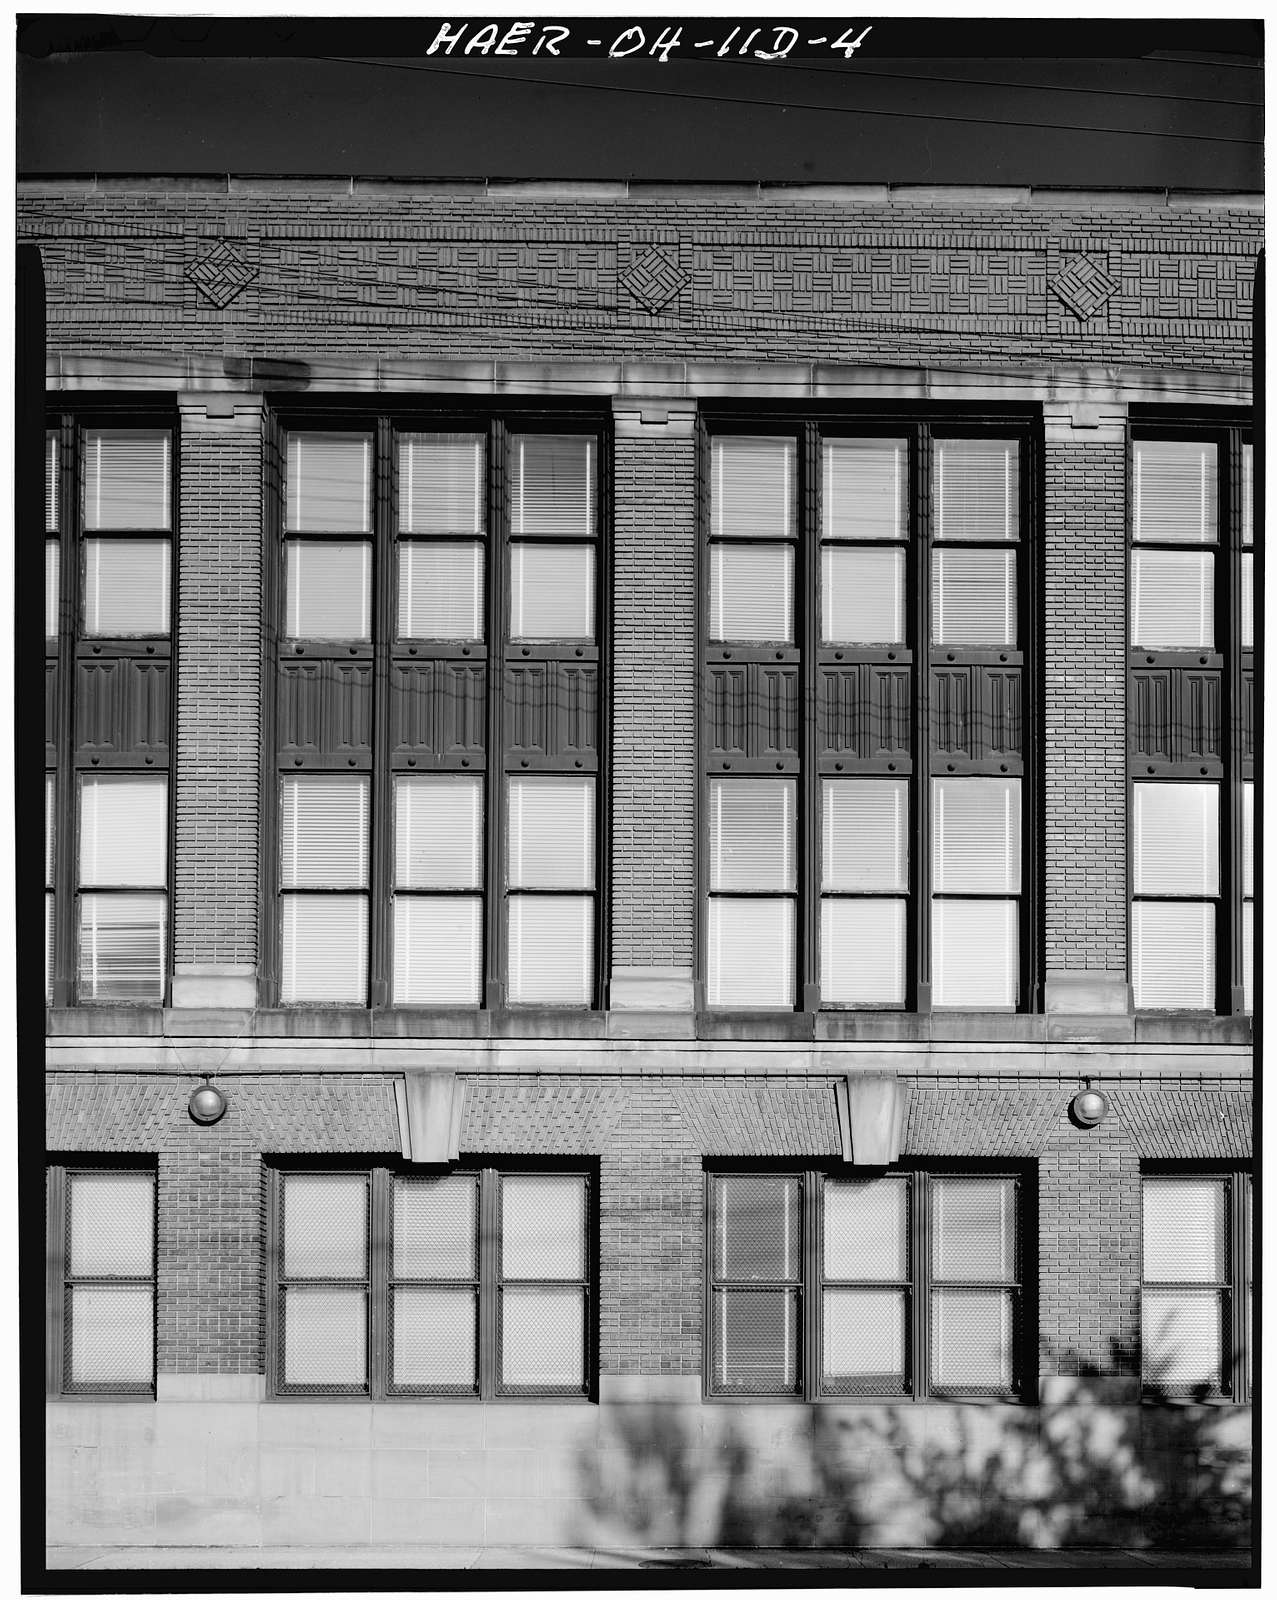 Peerless Motor Car Company, East Ninety-third Street & Quincy Avenue, Cleveland, Cuyahoga County, OH